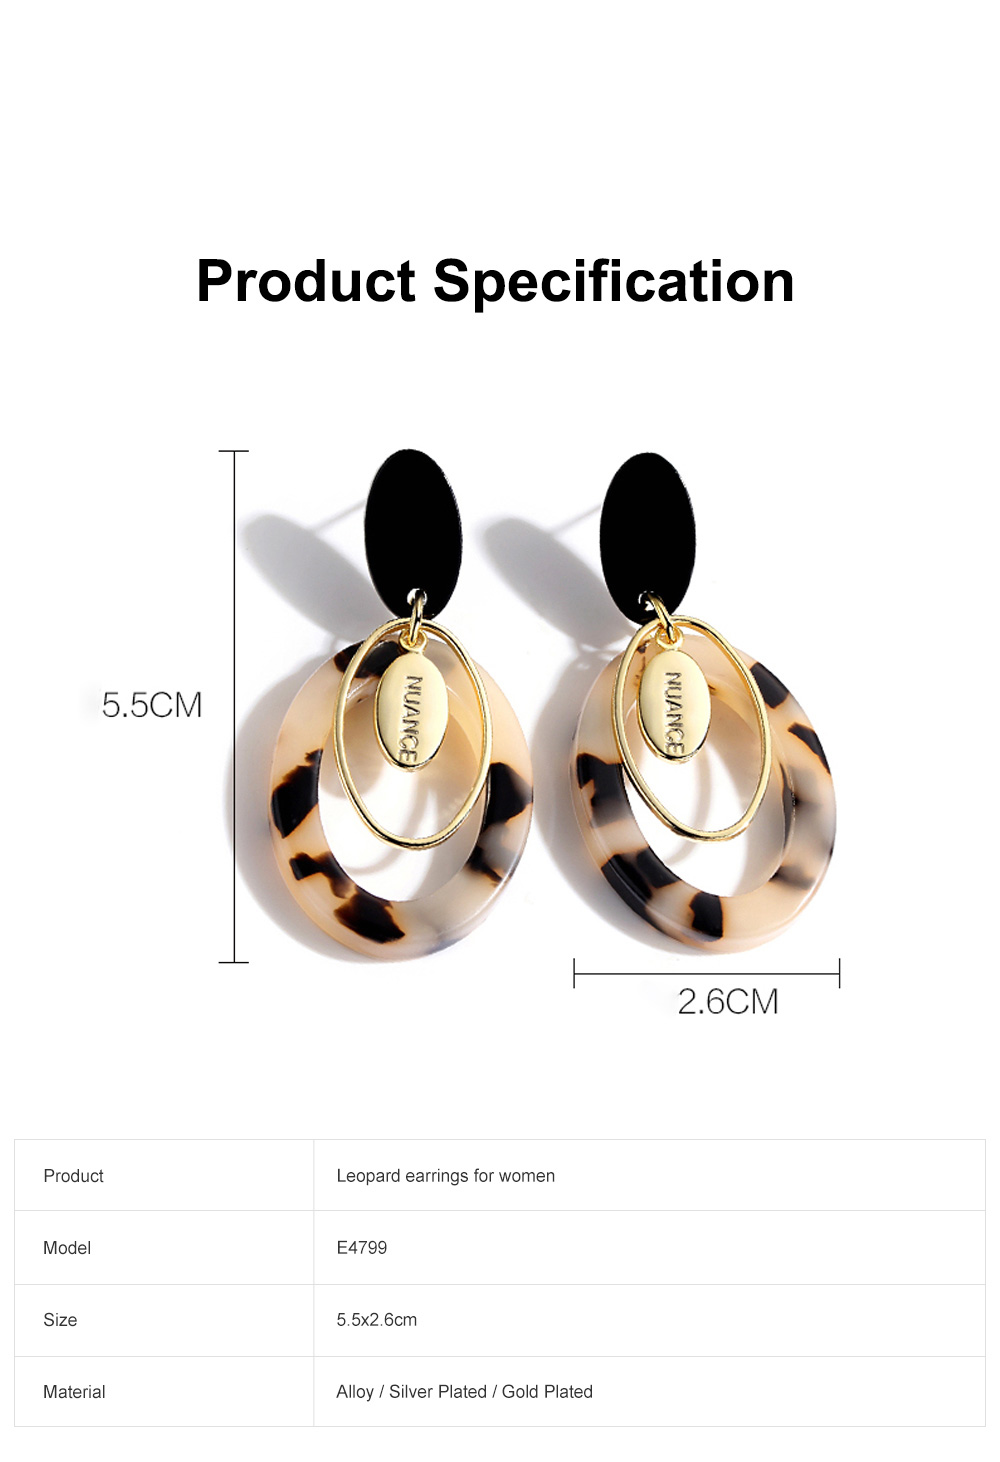 Chic Design Circle Leopard Hoop Drop Earrings Large Long Earrings For Women 6